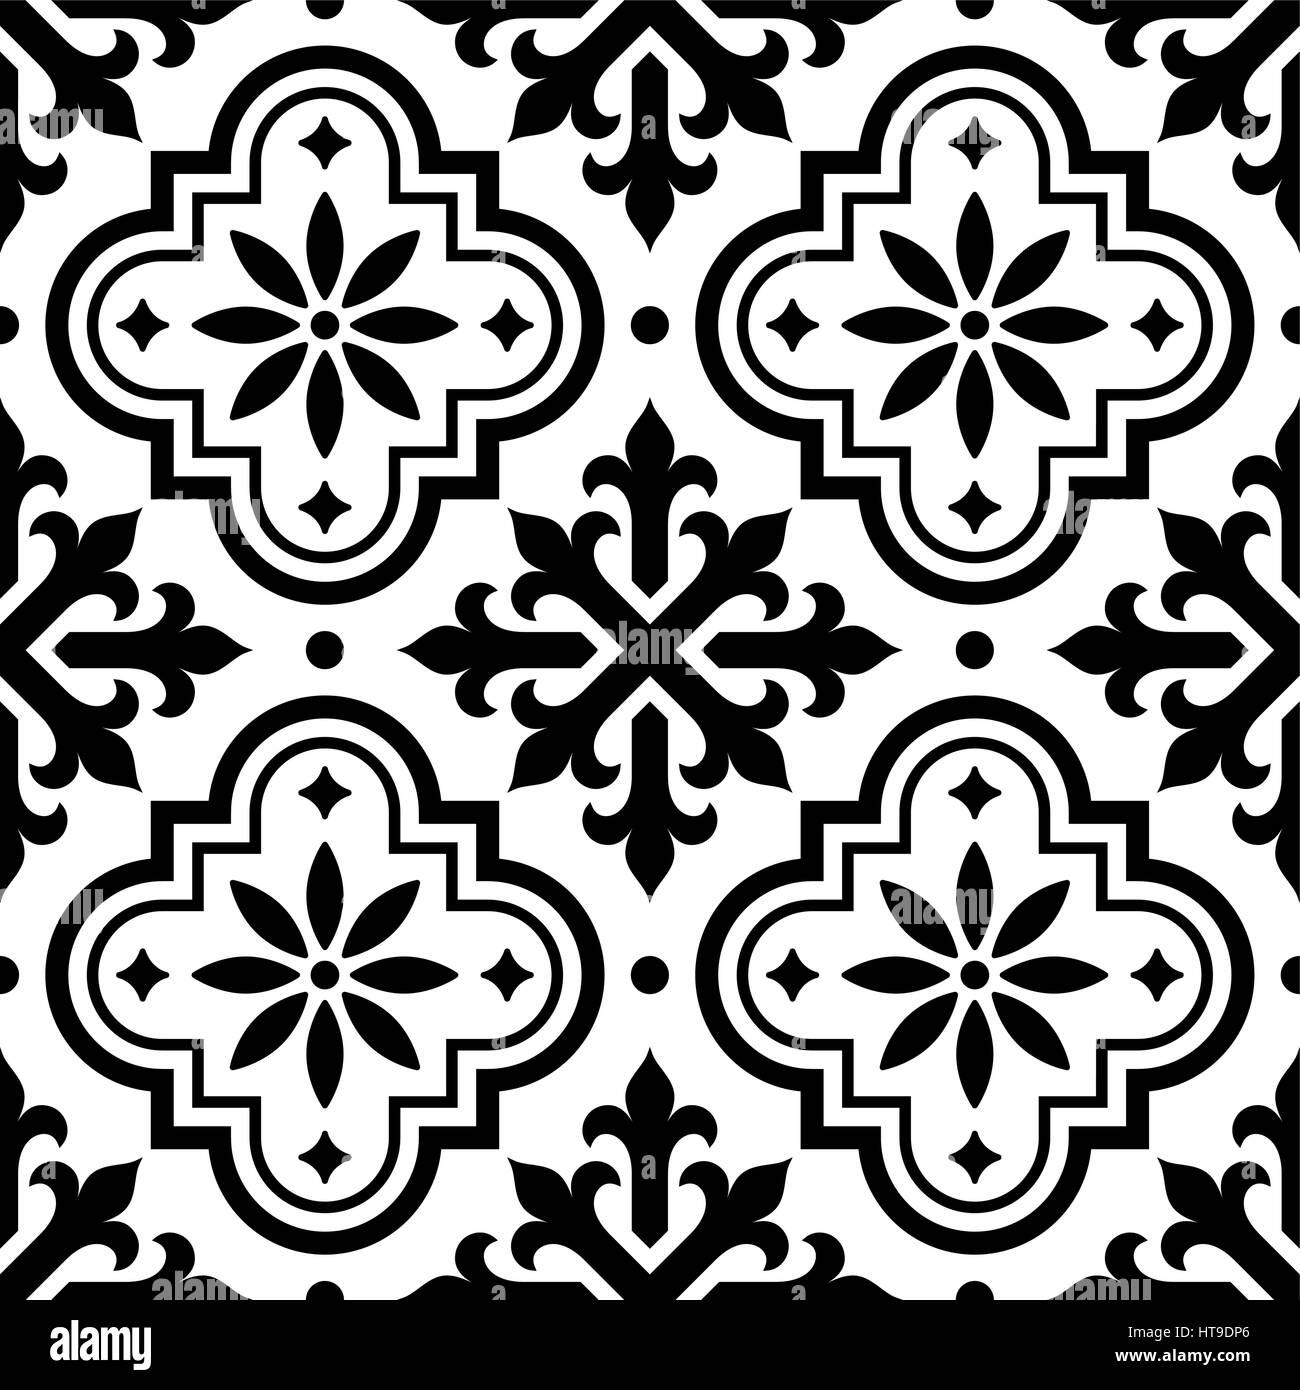 Spanish tile pattern, Moroccan tiles design, seamless black and ...